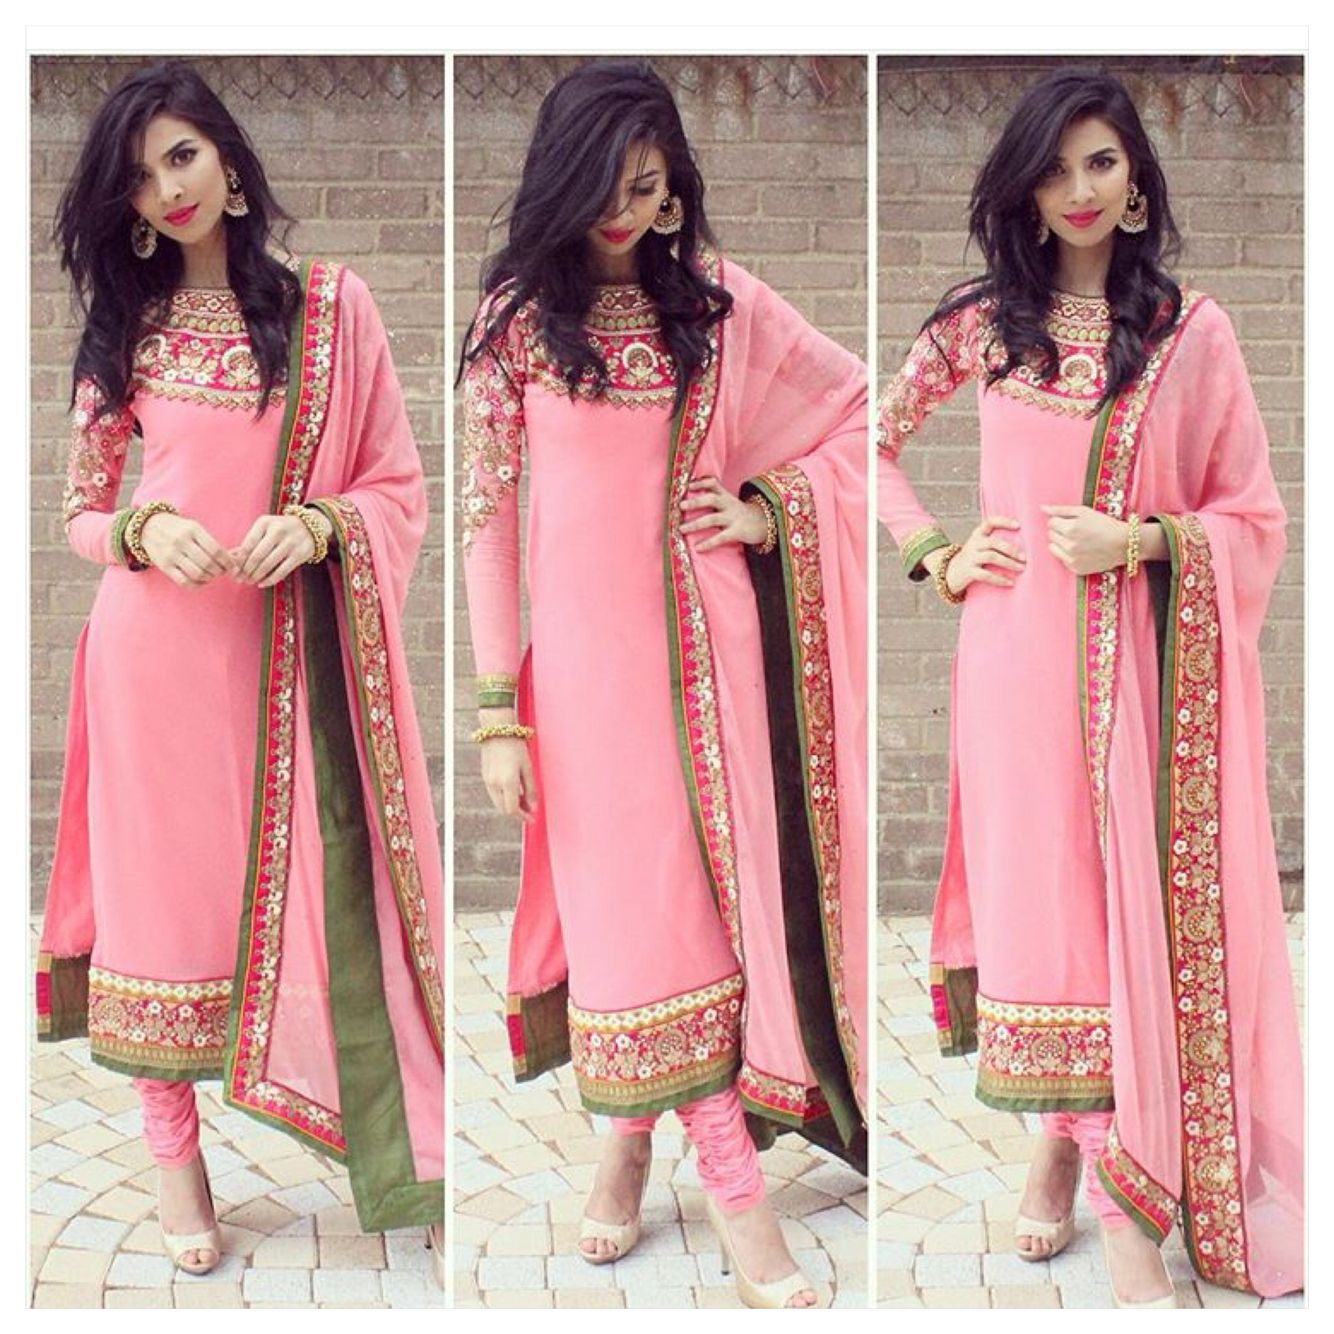 Pakistani desi Indian Bengali pink | Desi SWAG | Pinterest | Moda ...